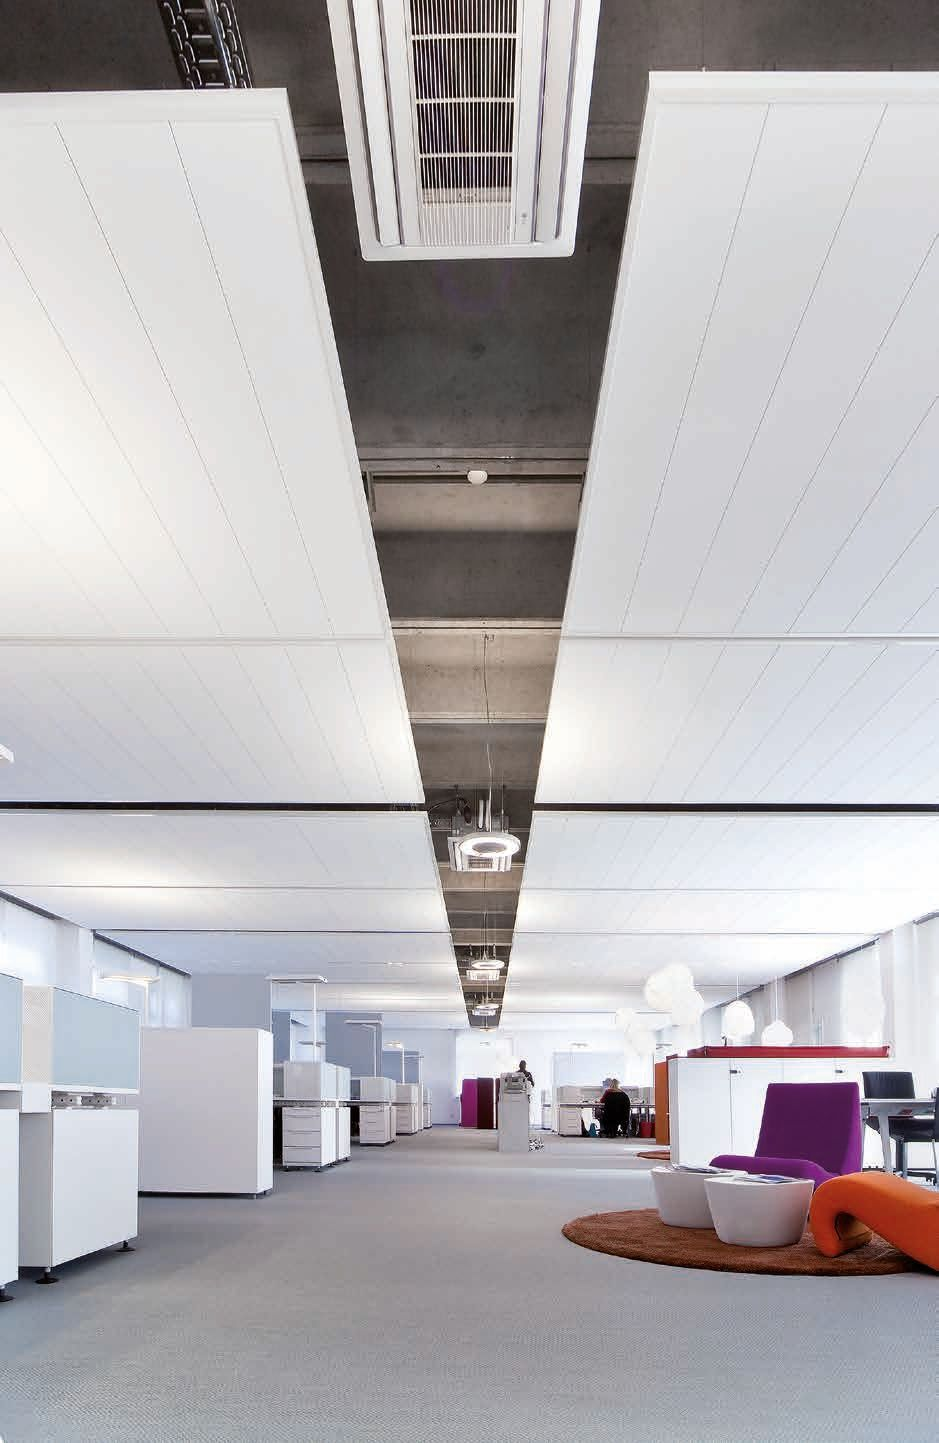 Acoustic ceiling clouds thermatex sonic sky by knauf amf italia acoustic ceiling clouds thermatex sonic sky by knauf amf italia controsoffitti dailygadgetfo Choice Image